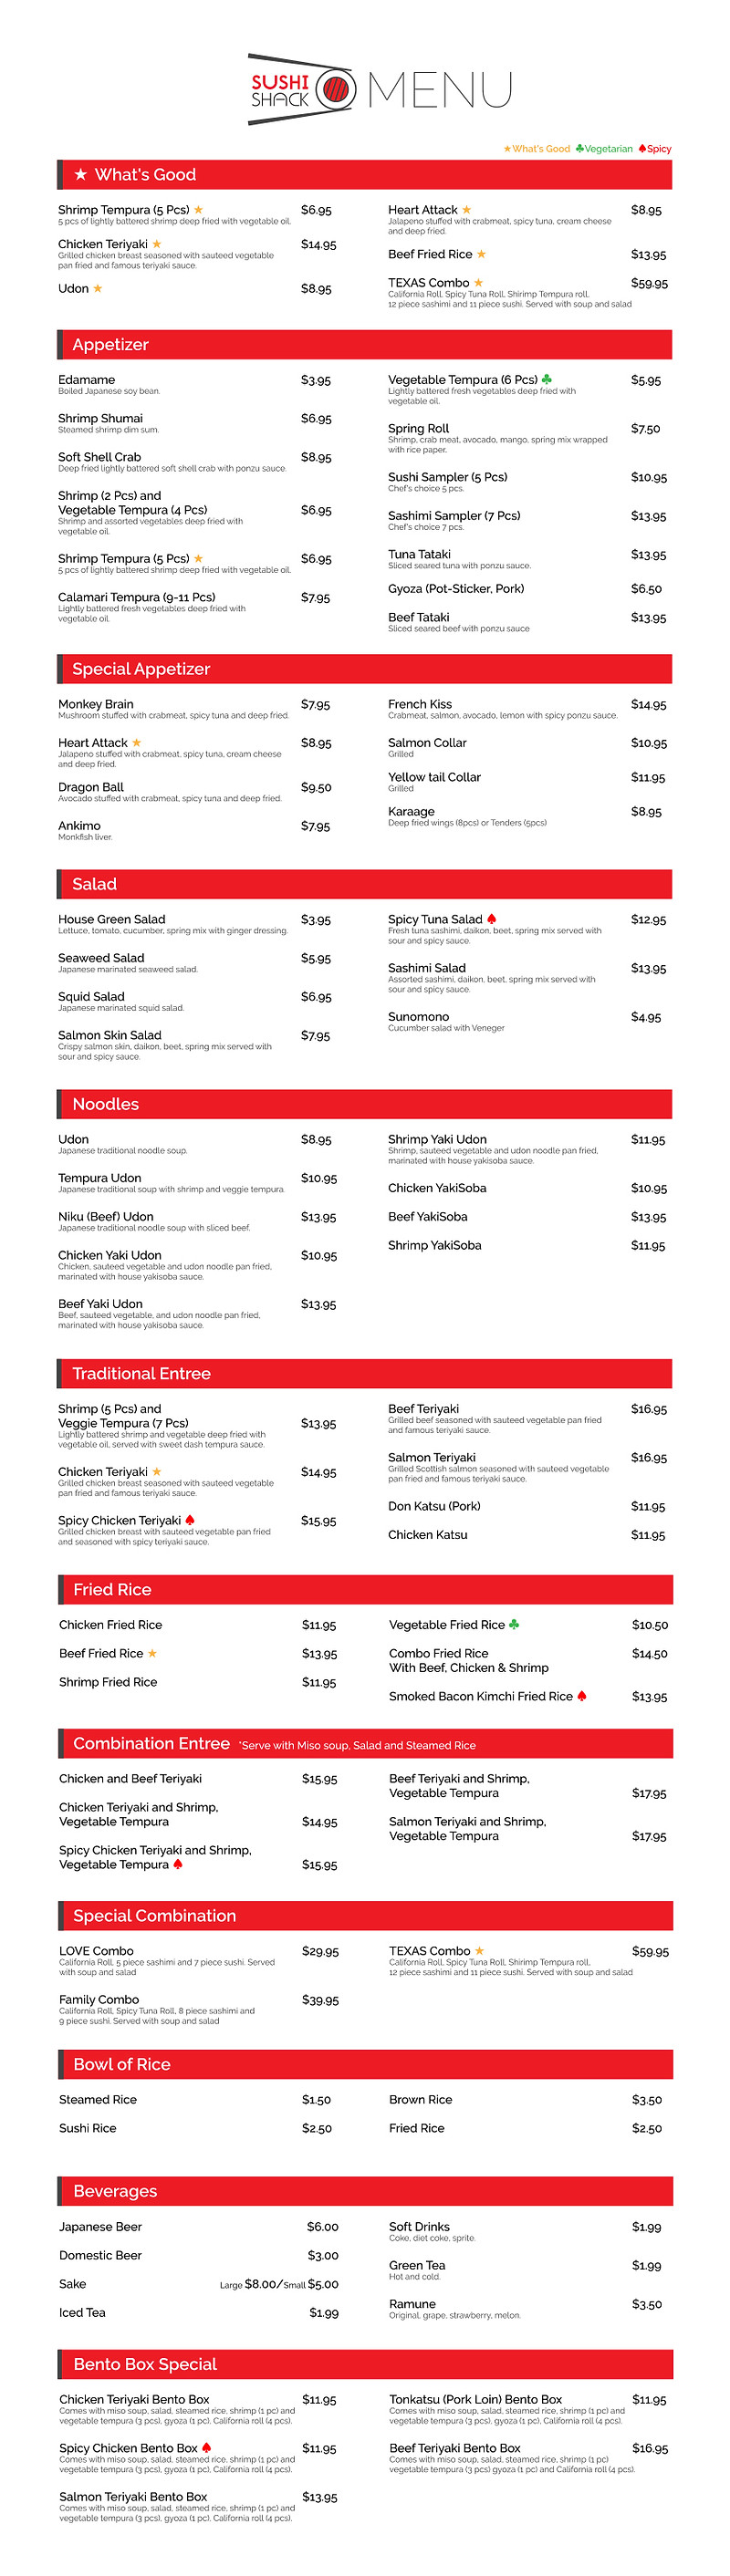 Sushi Shack_full menu_web.jpg